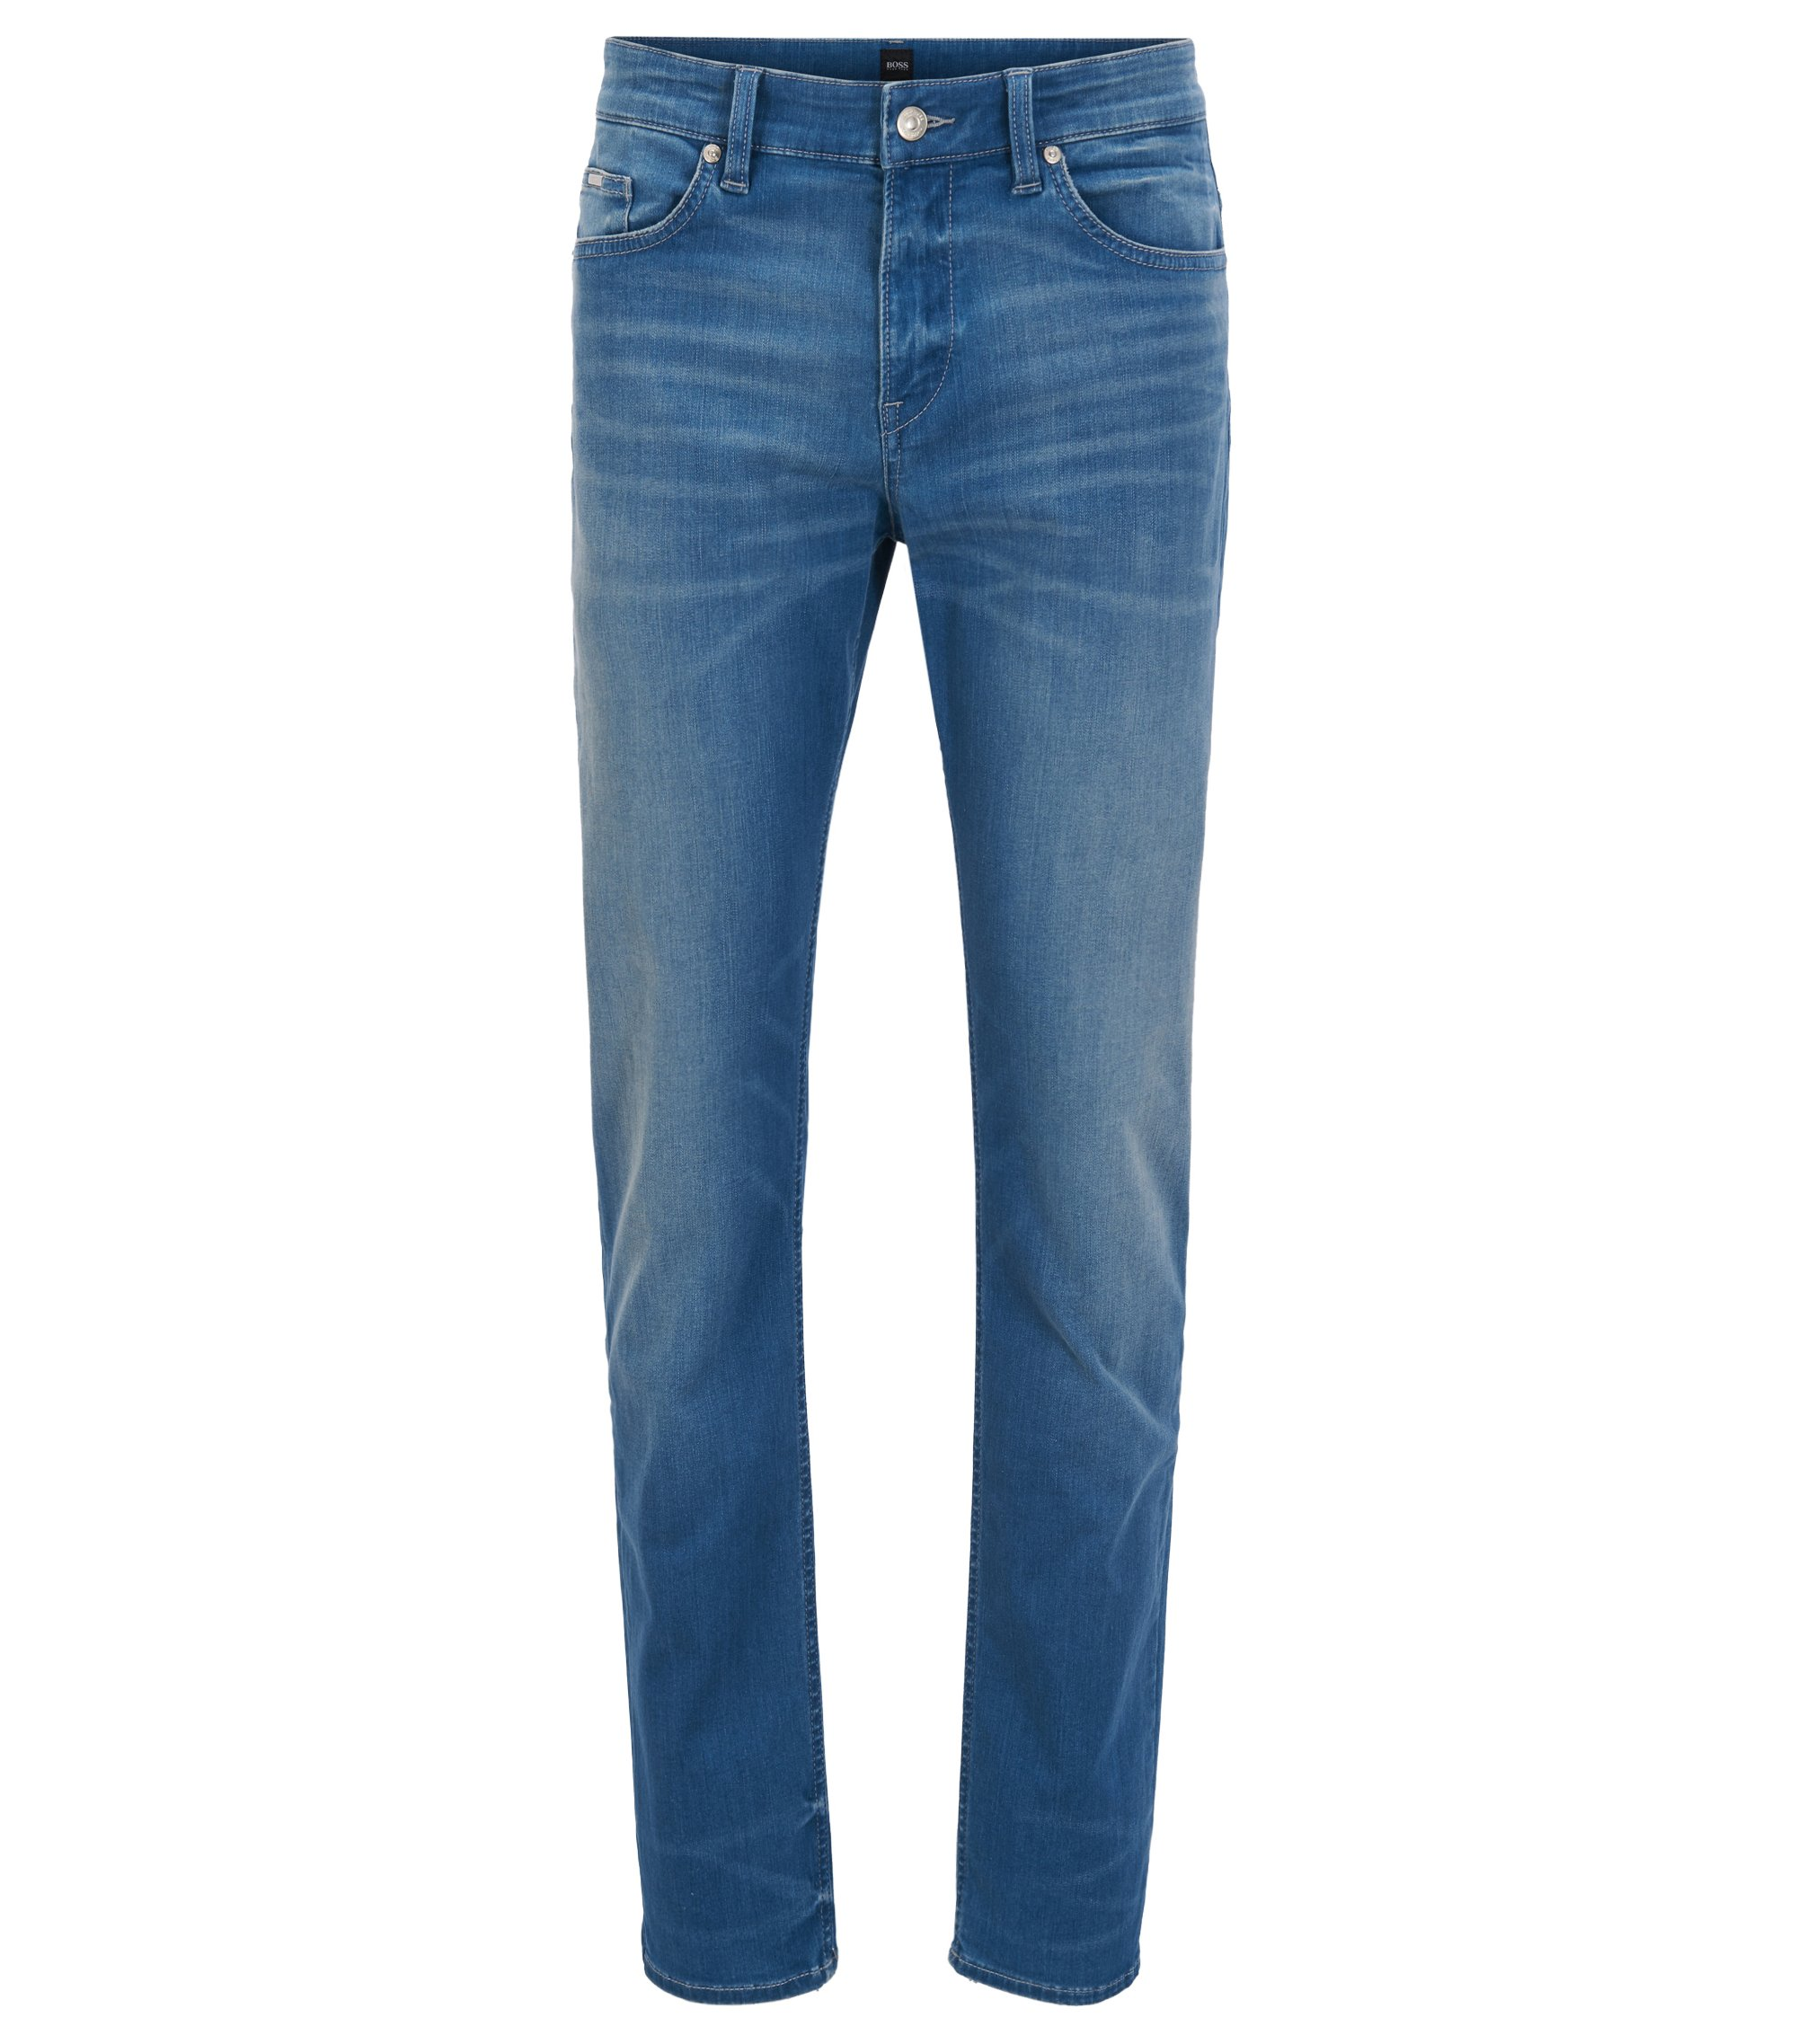 Jean Slim Fit en denim indigo stretch, Bleu